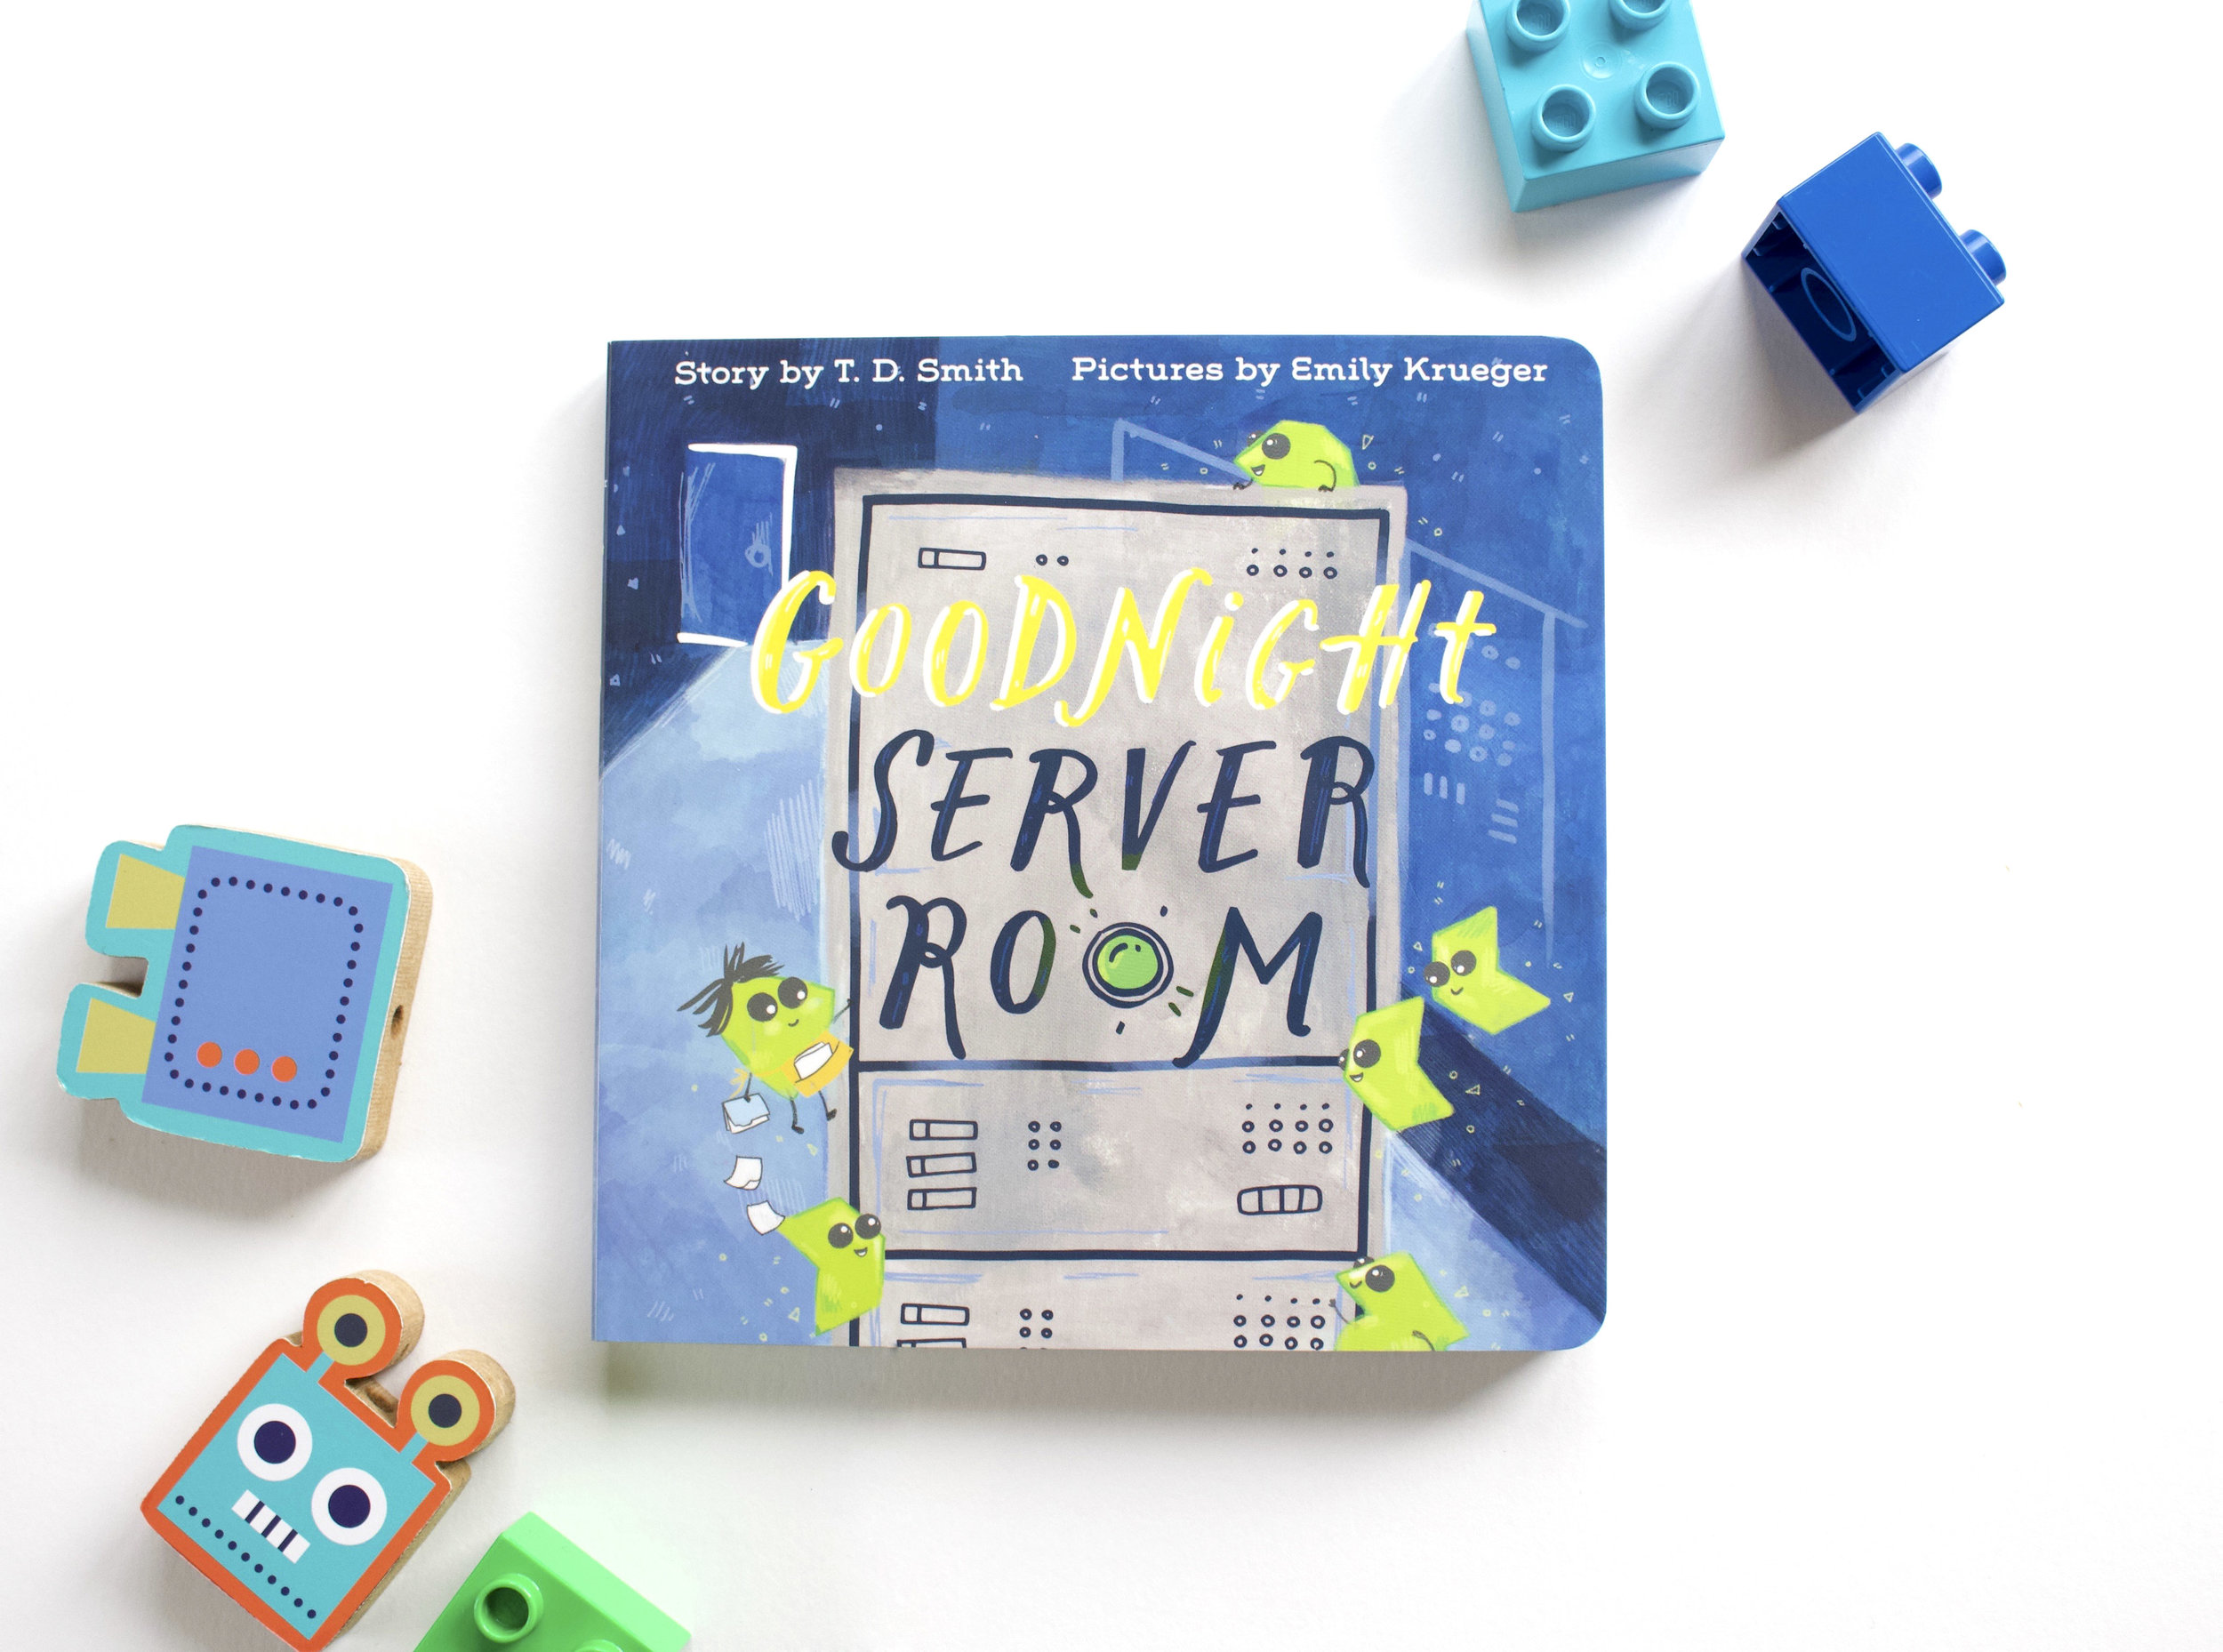 Goodnight Server Room now available! - 6